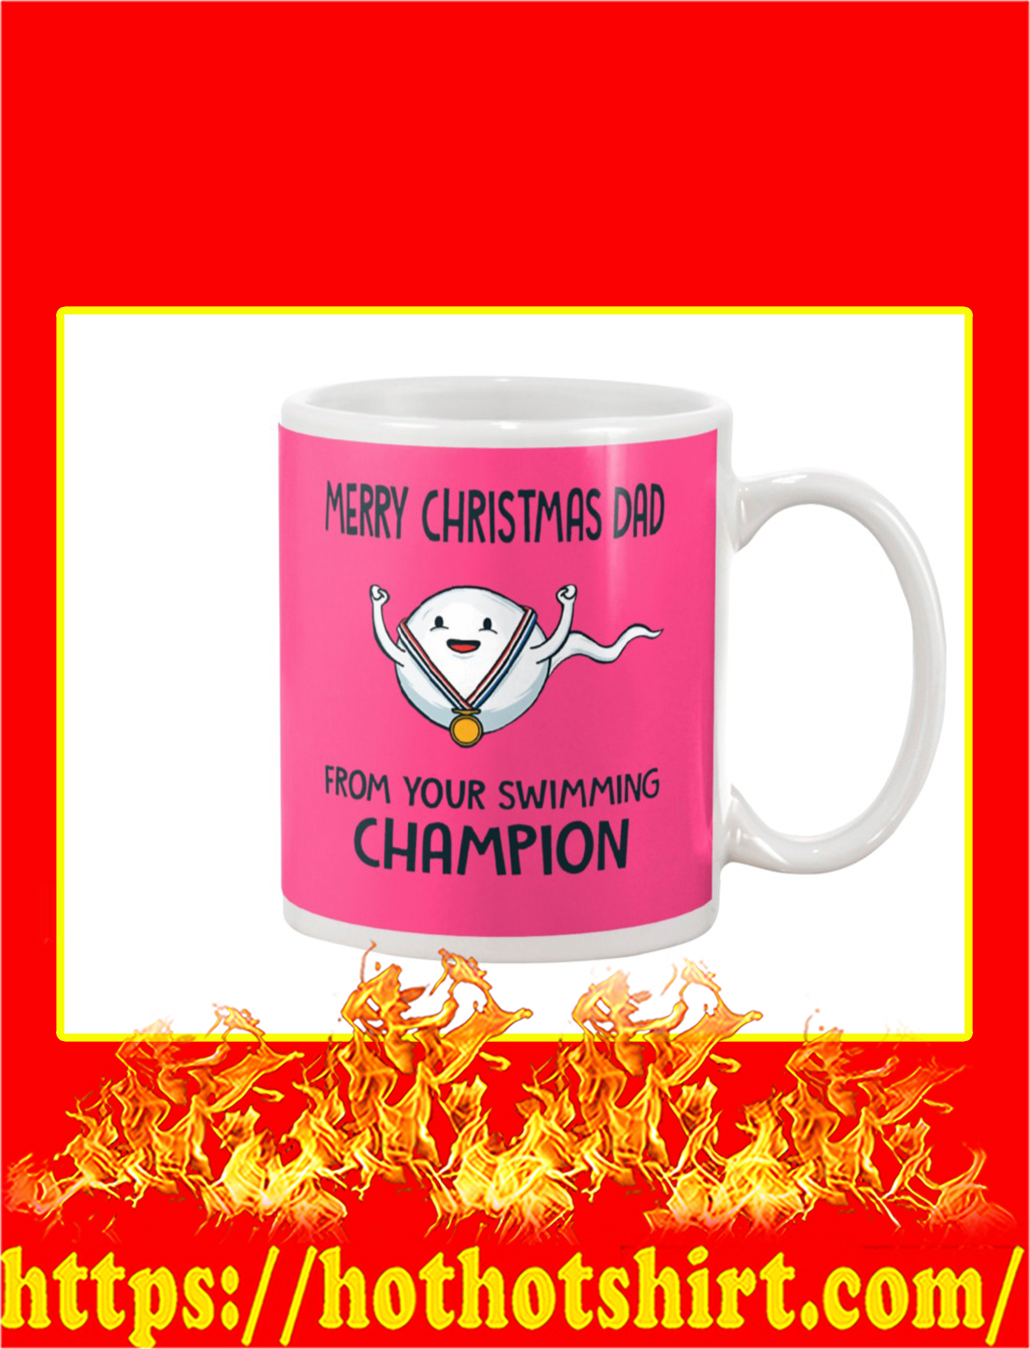 Merry Christmas Dad From Your Swimming Champion Mug- cyber pink